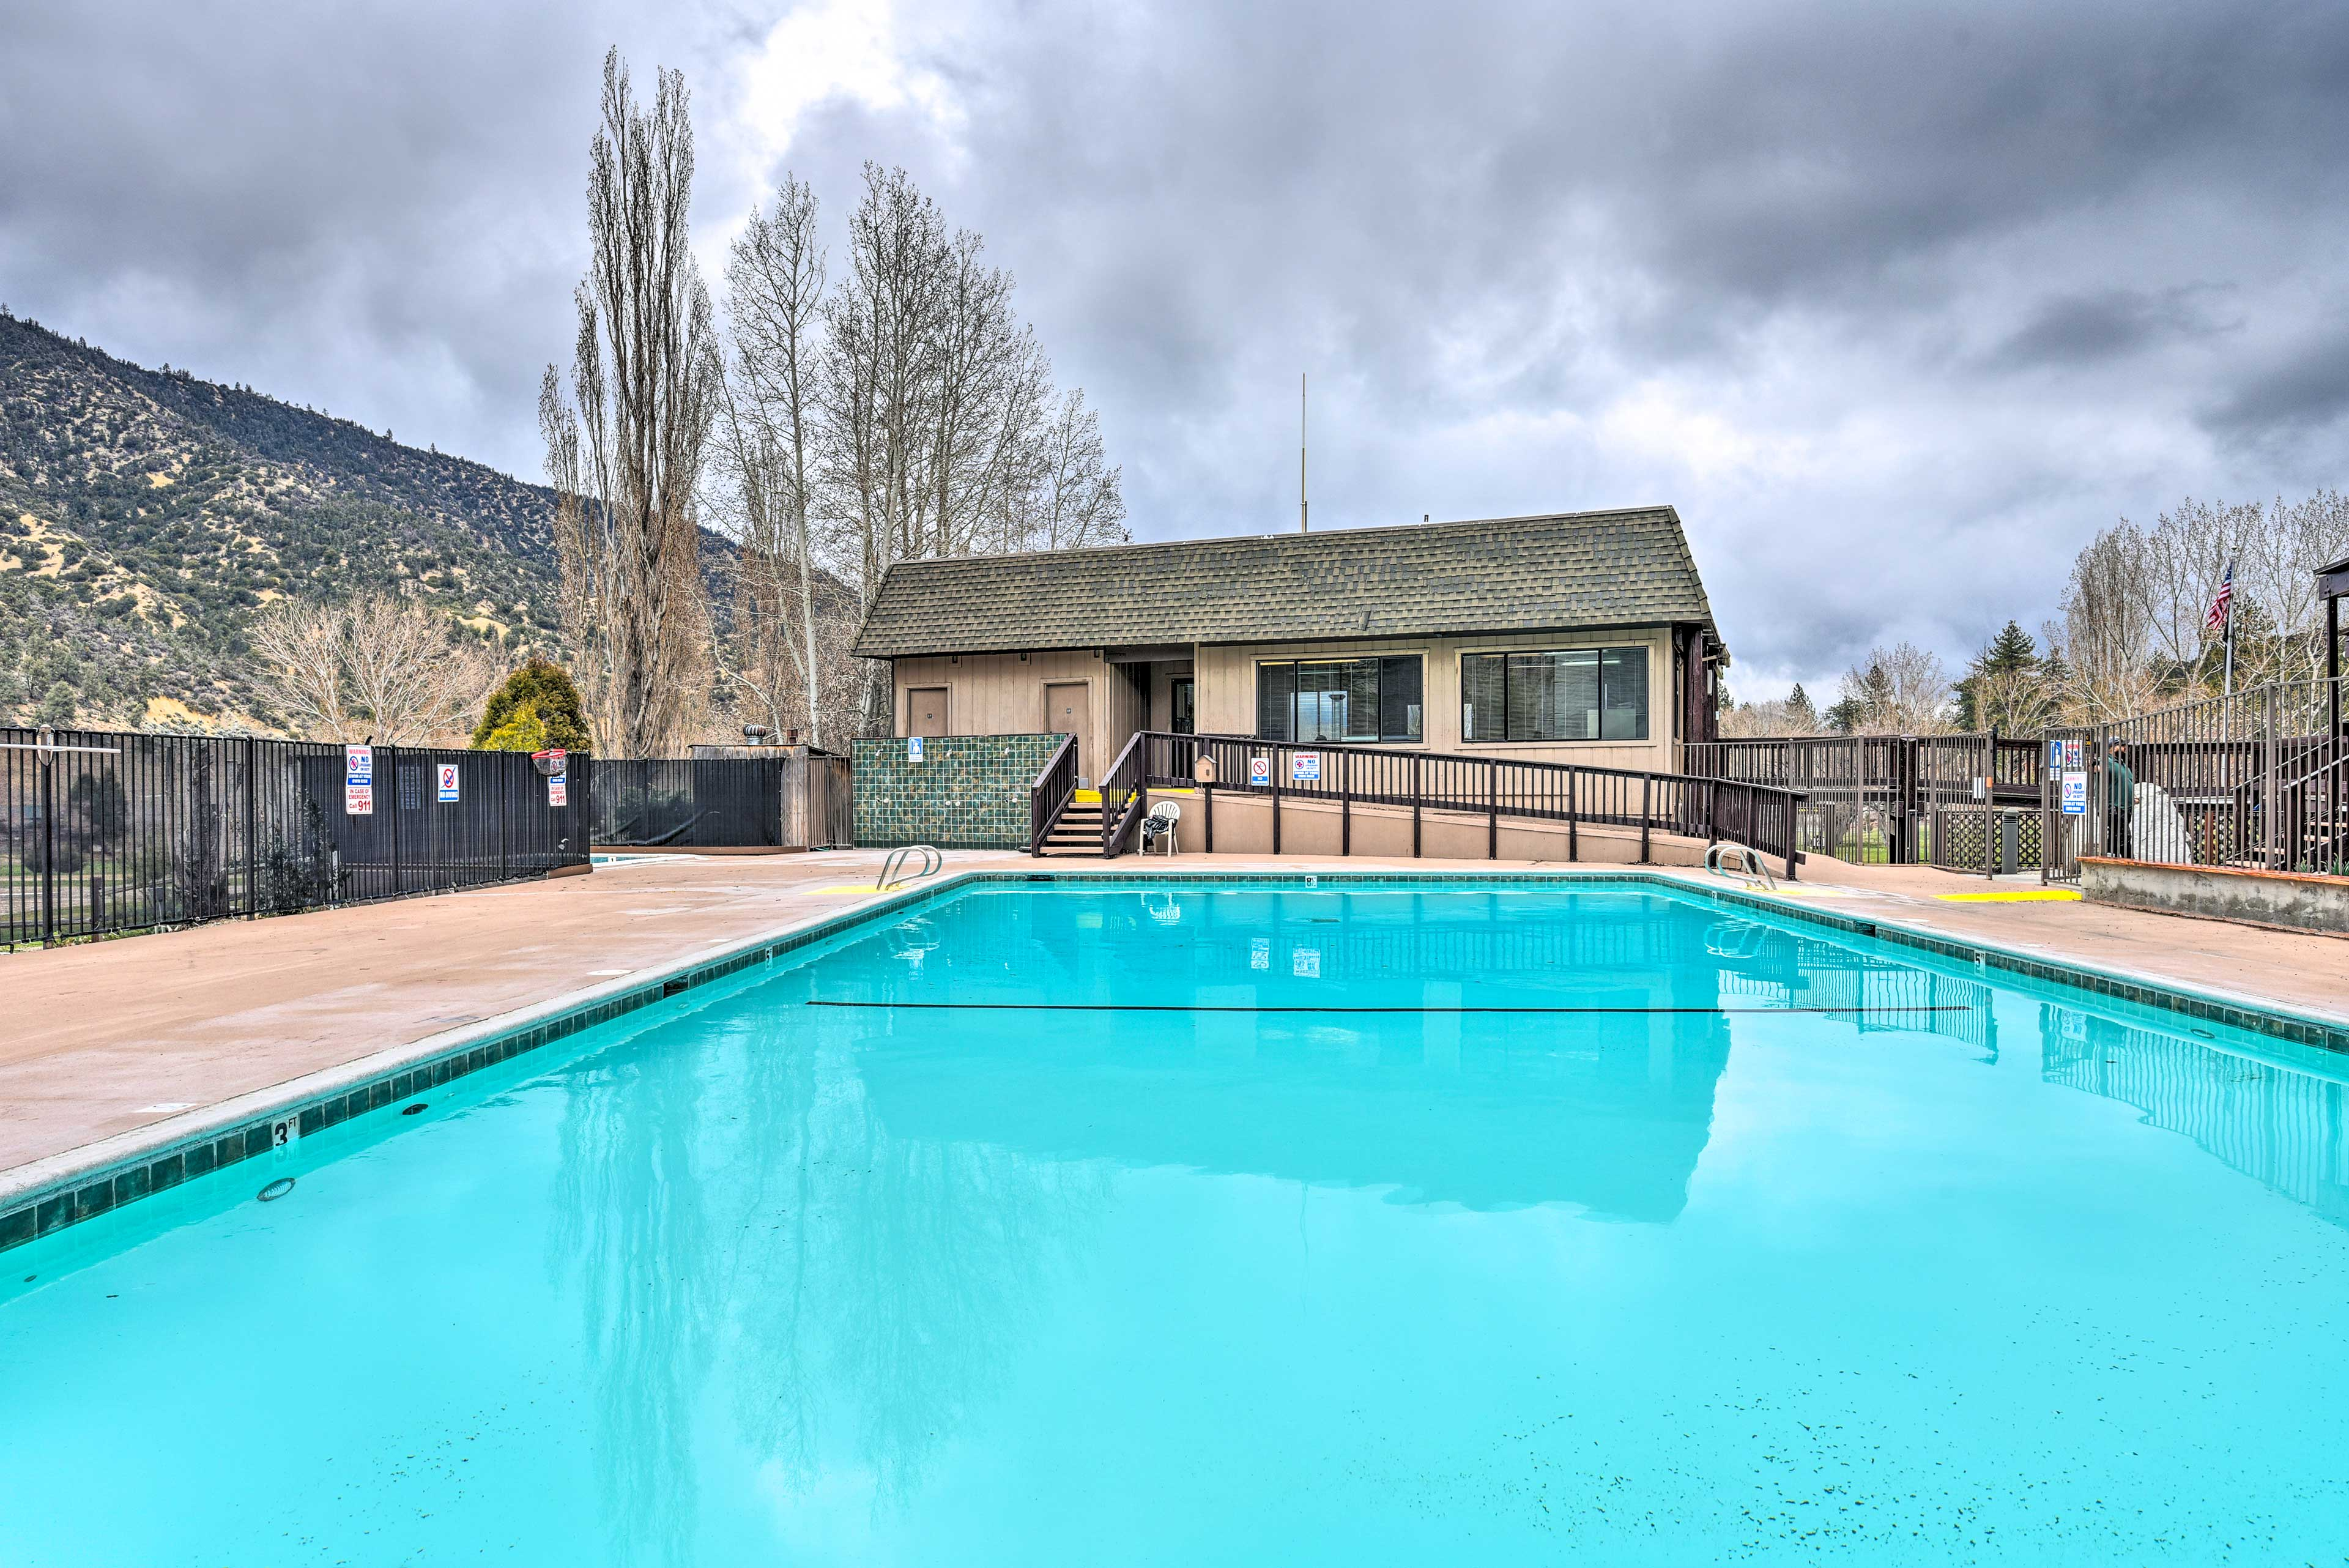 This pool is a short walk from the home.